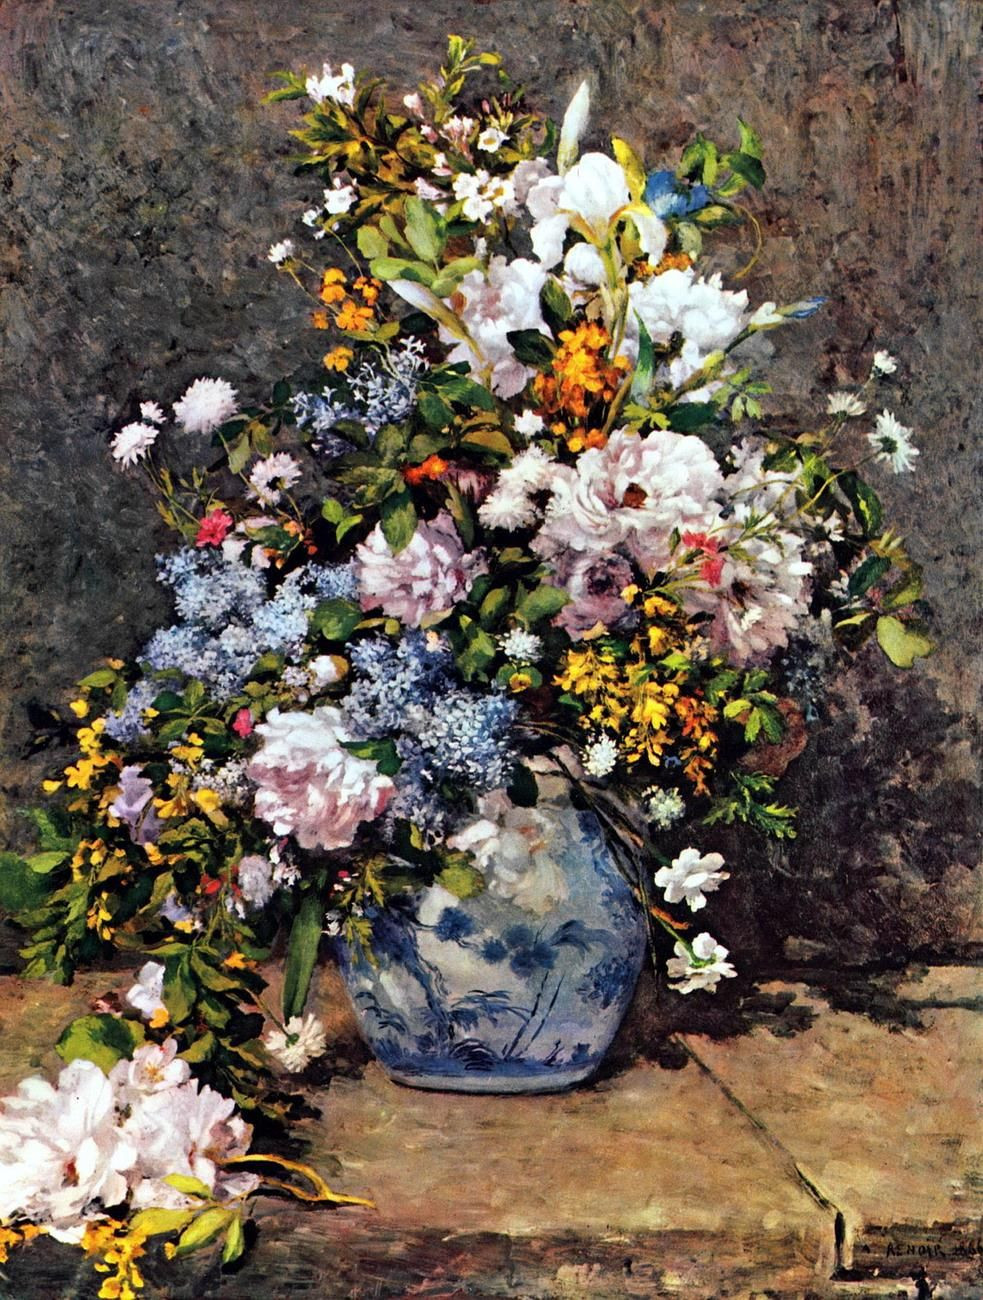 flowers in a vase 1866 of pierre auguste renoir 1841 1919 france grand vase de fleurs for pierre auguste renoir 1841 1919 france grand vase de fleurs 1866